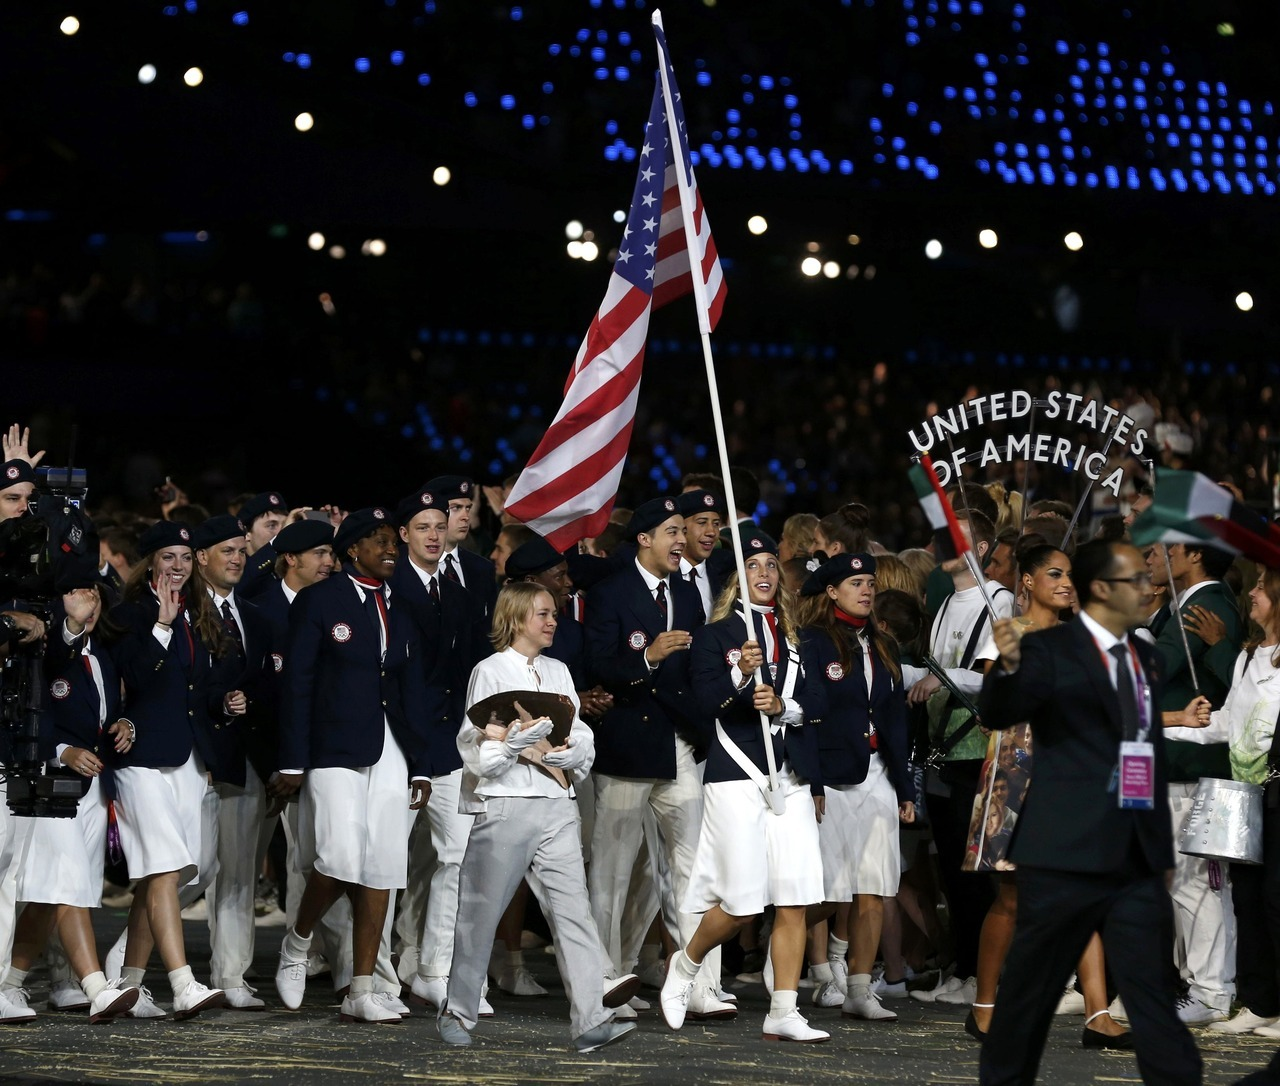 Flag bearer Mariel Zagunis of the United States holds the national flag as she leads the contingent in the athletes parade during the opening ceremony of the London 2012 Olympic Games at the Olympic Stadium July 27, 2012. [REUTERS/Murad Sezer]